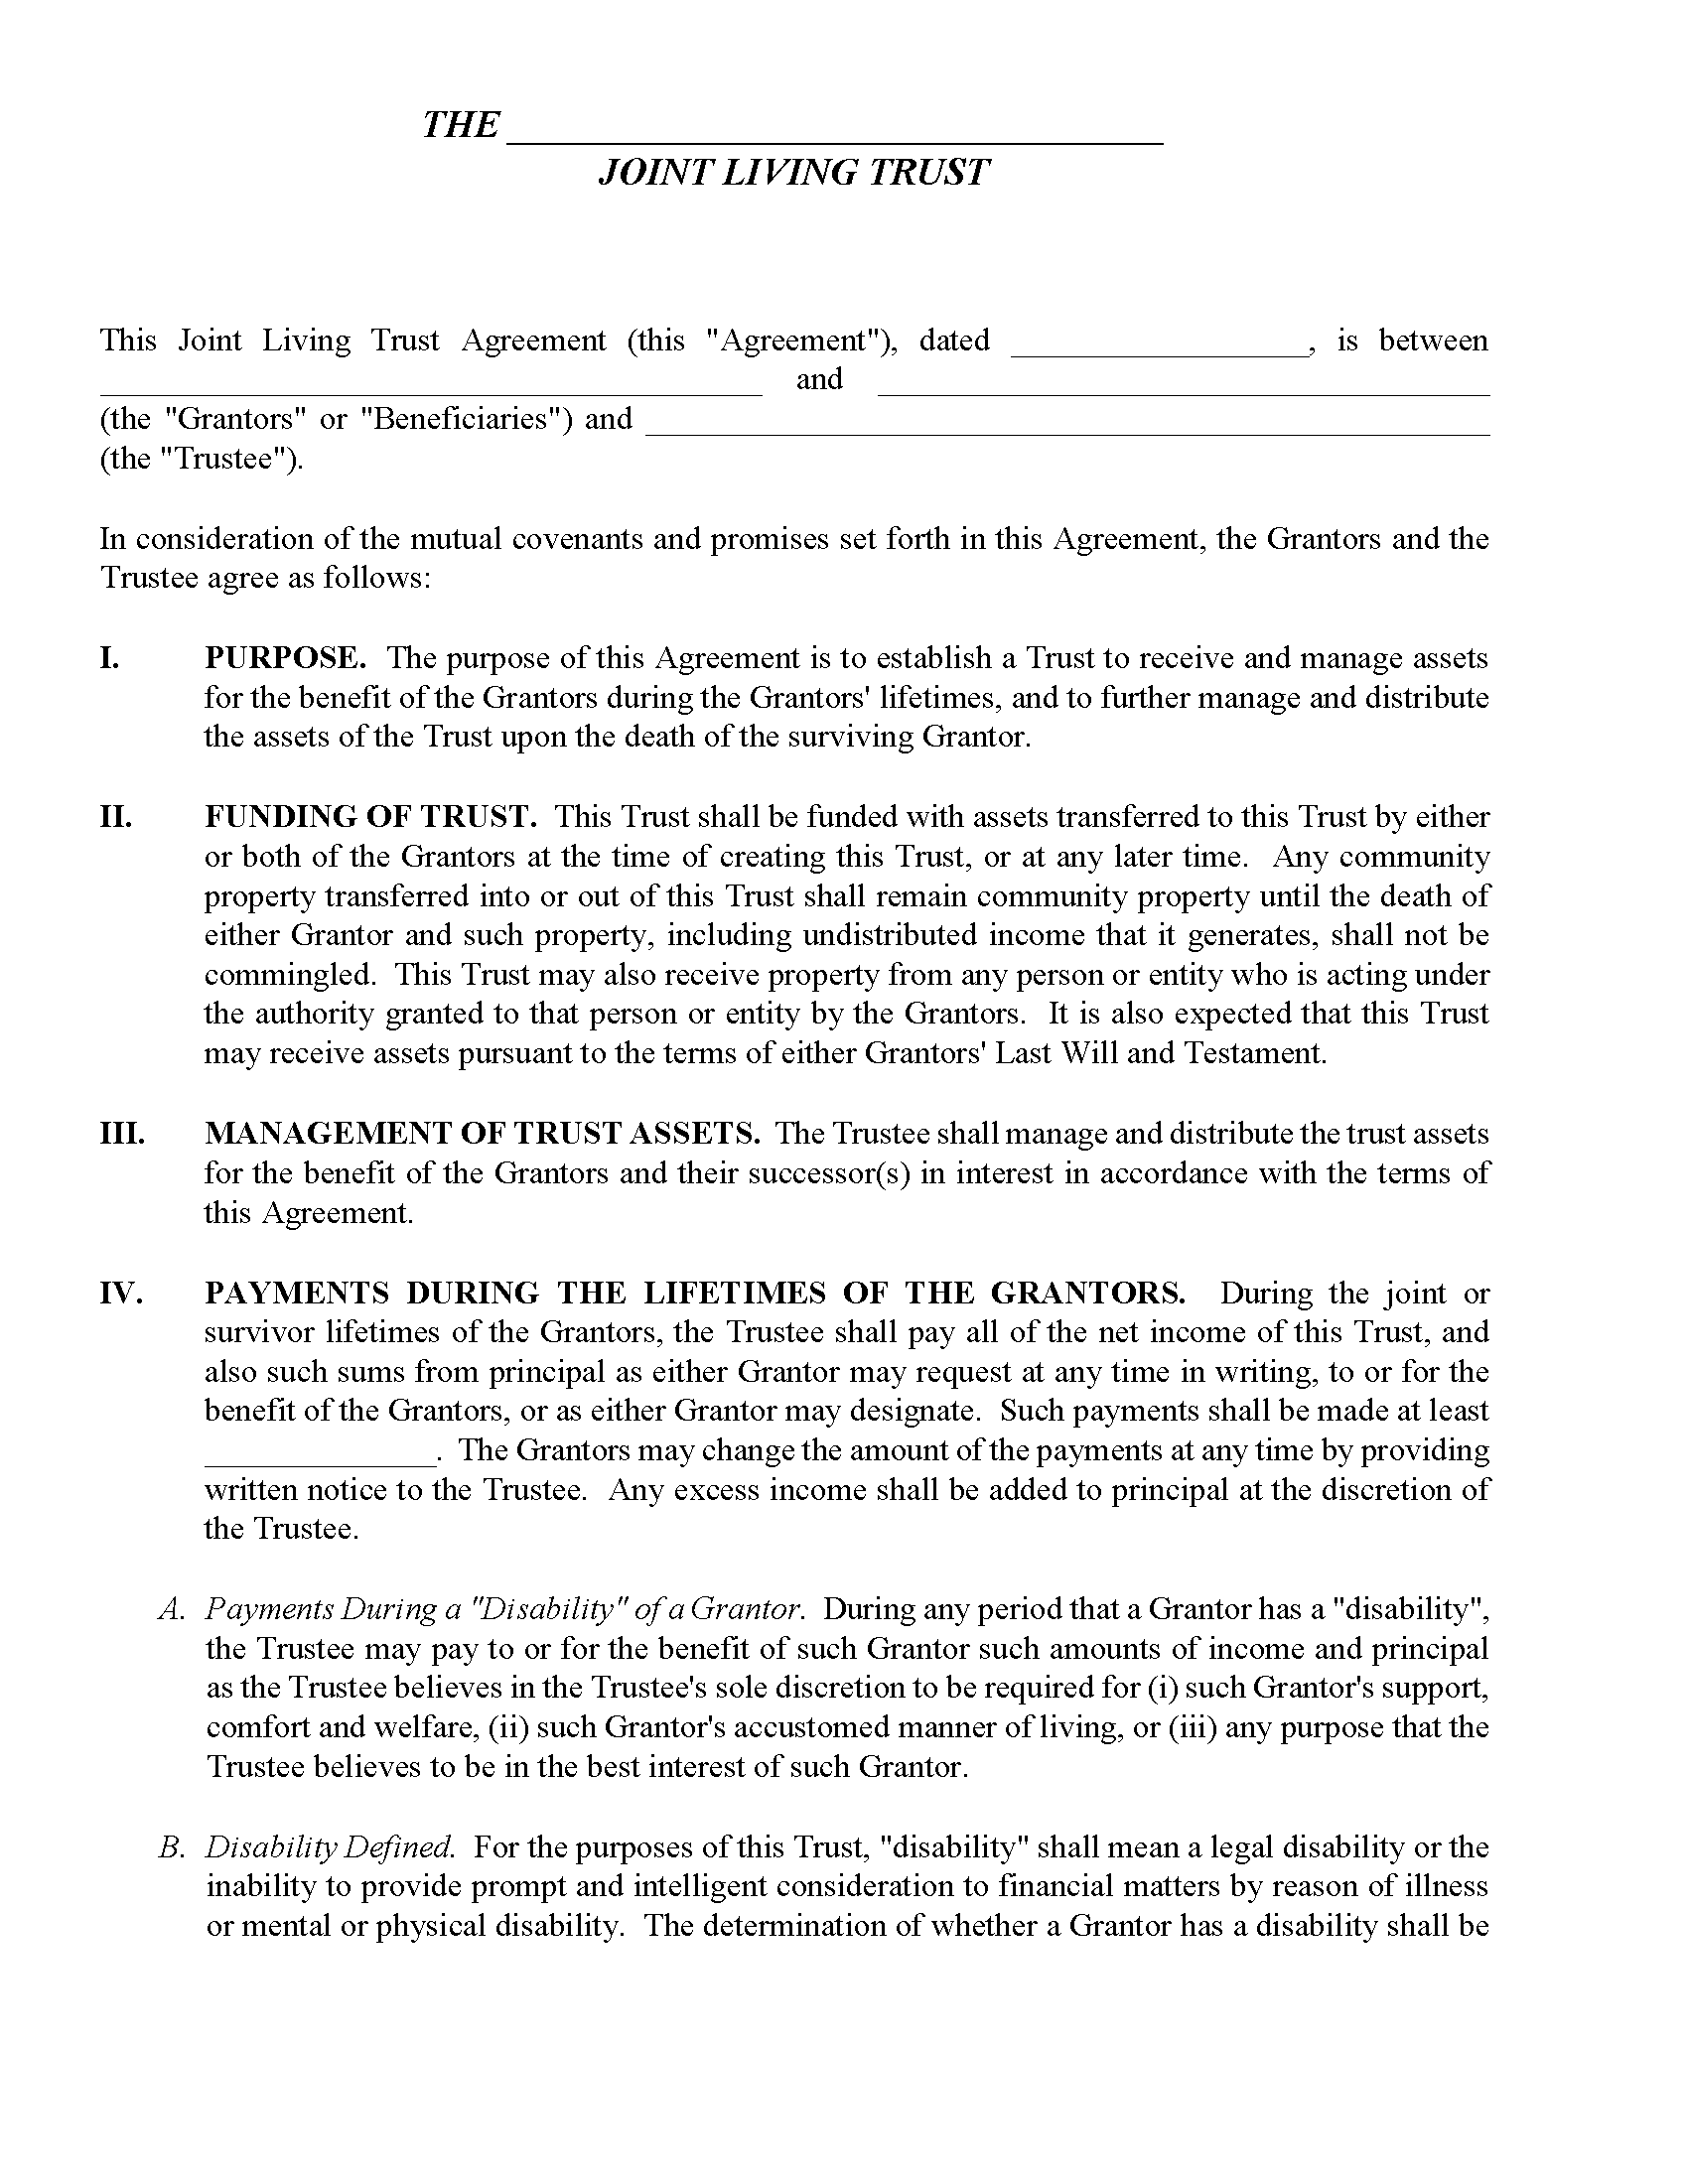 Joint Living Trust Fillable PDF Form